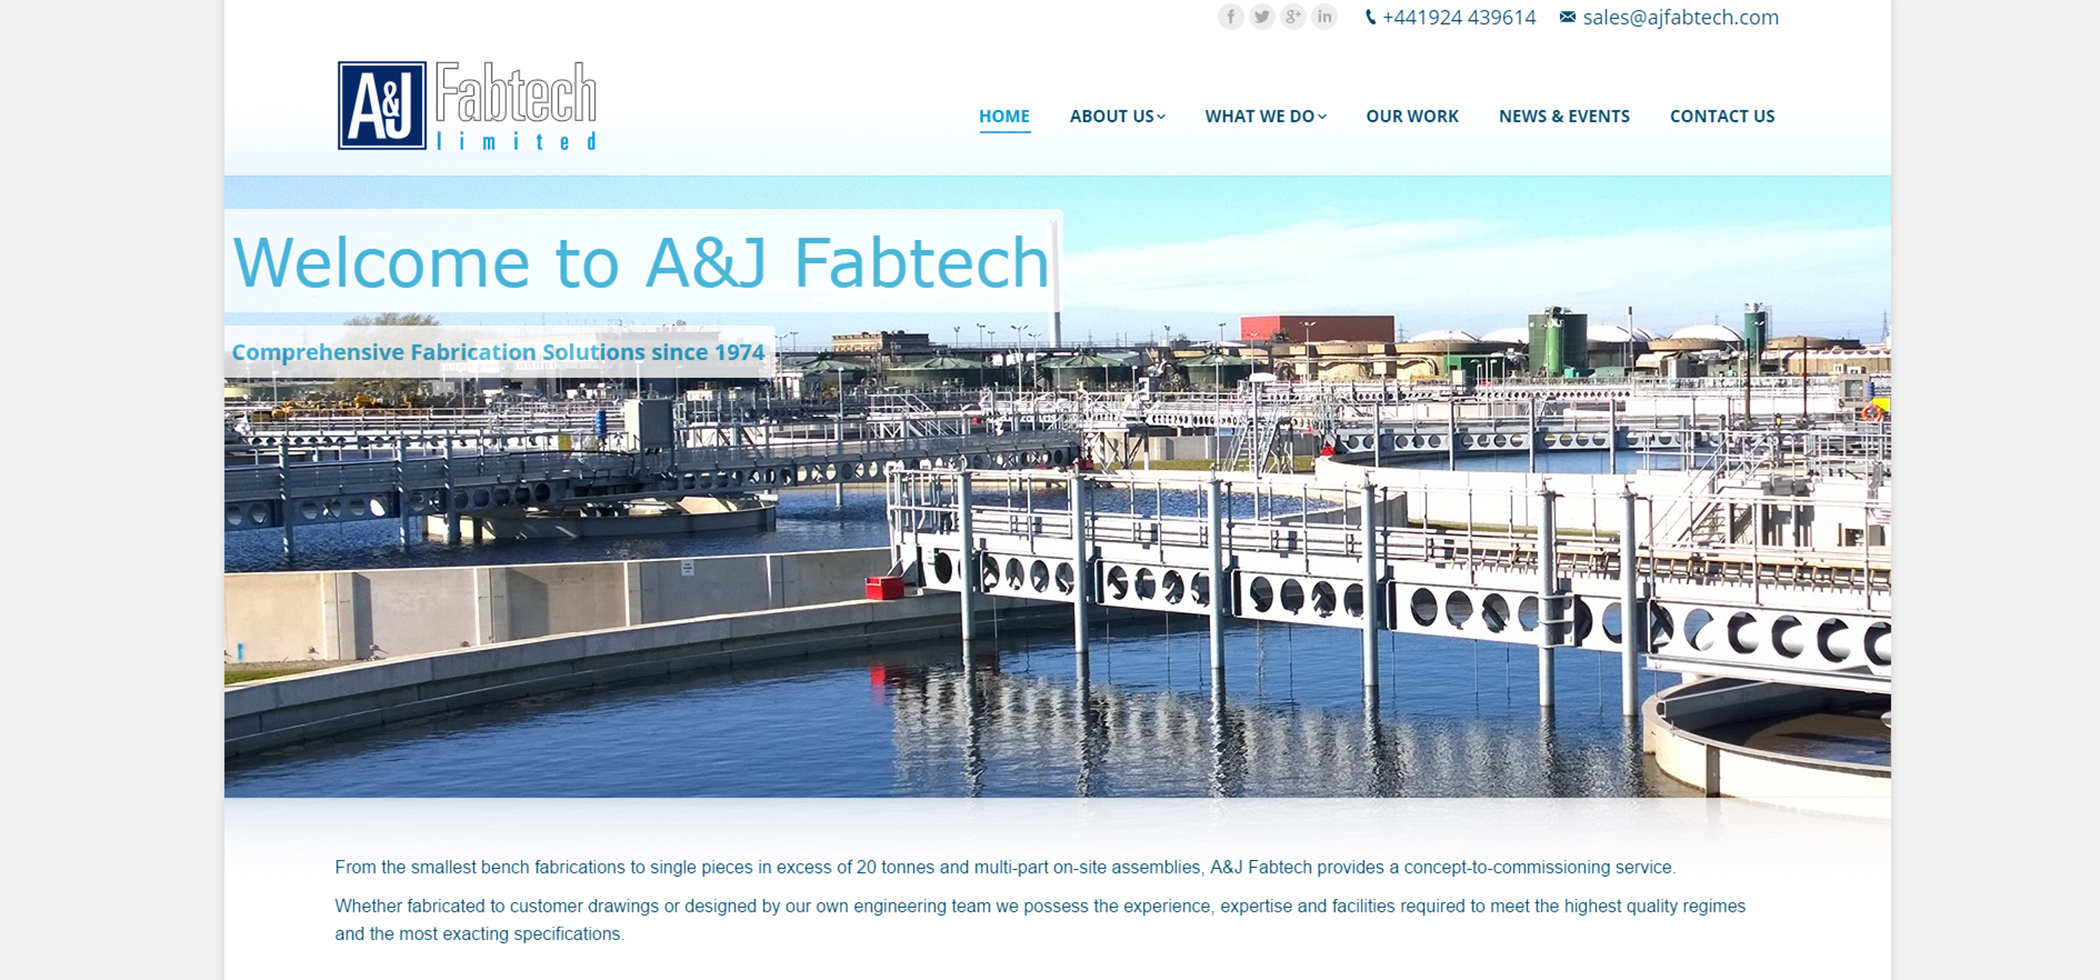 A&J Fabtech launches new intuitive website